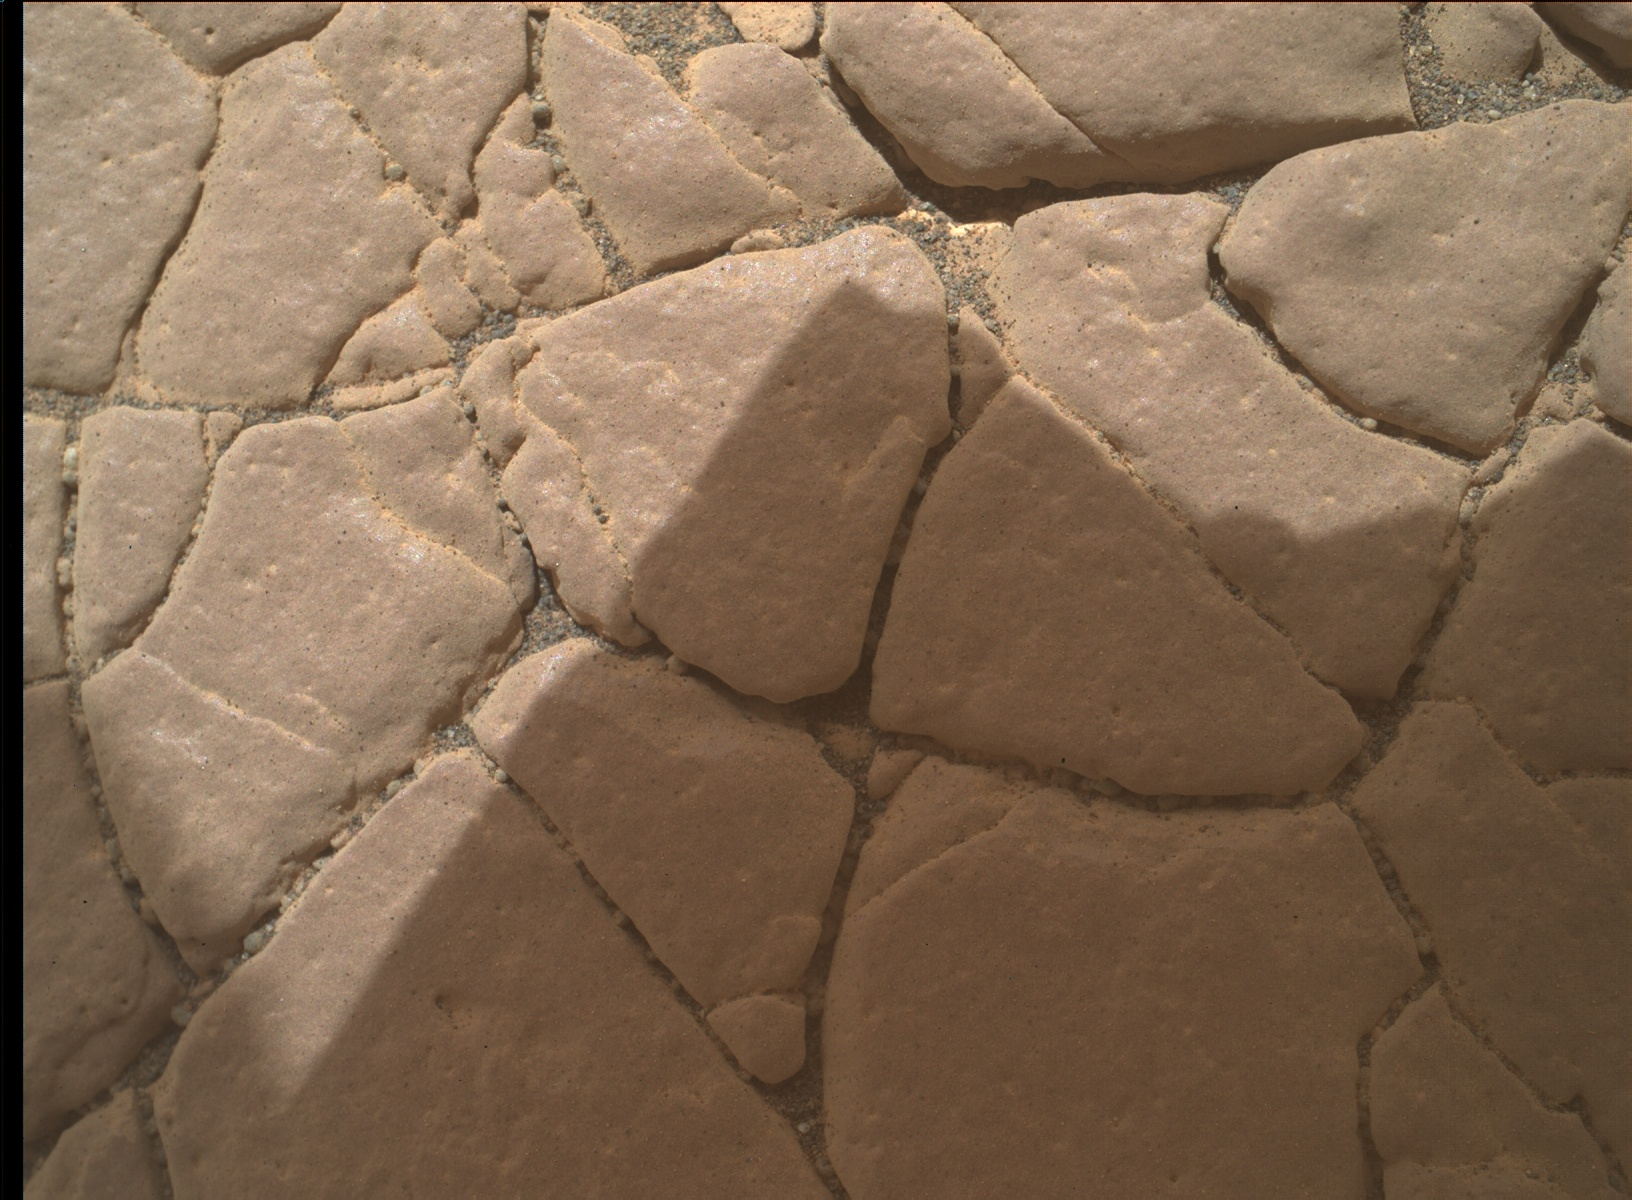 Nasa's Mars rover Curiosity acquired this image using its Mars Hand Lens Imager (MAHLI) on Sol 2352